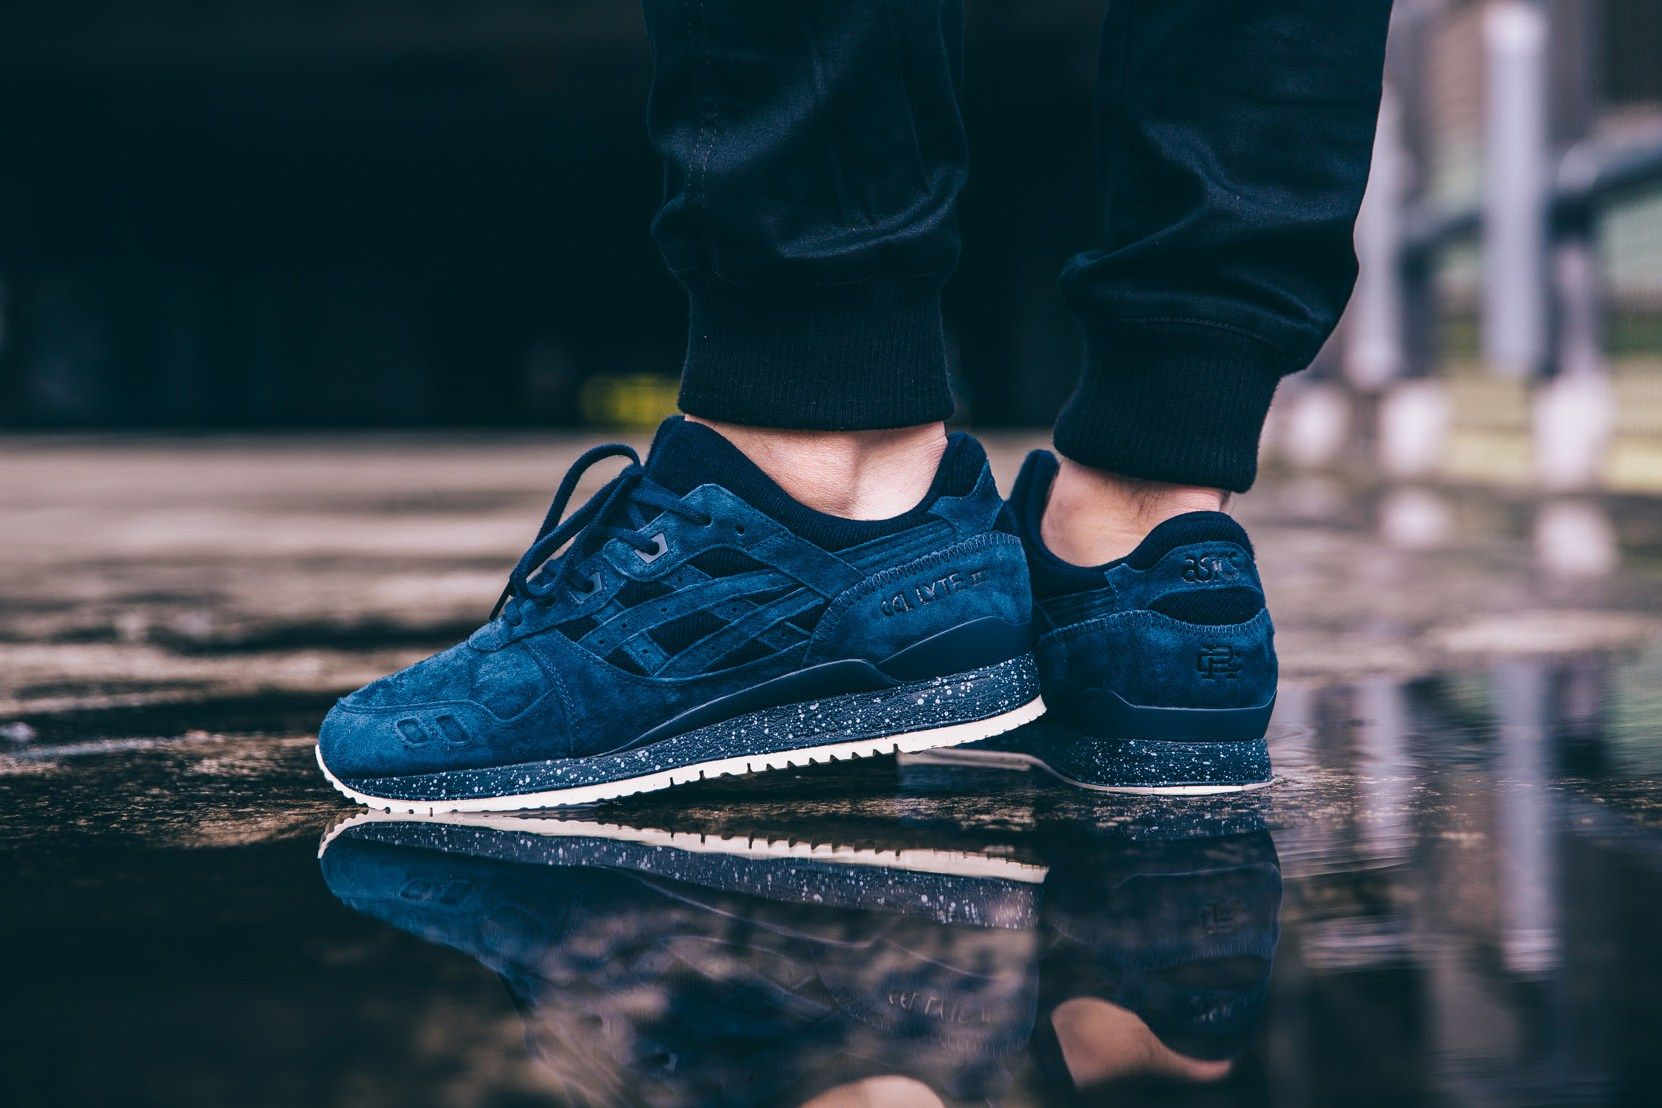 0aea76b9609f A Closer Look at the ASICS Tiger x Reigning Champ GEL-Lyte III Collaboration